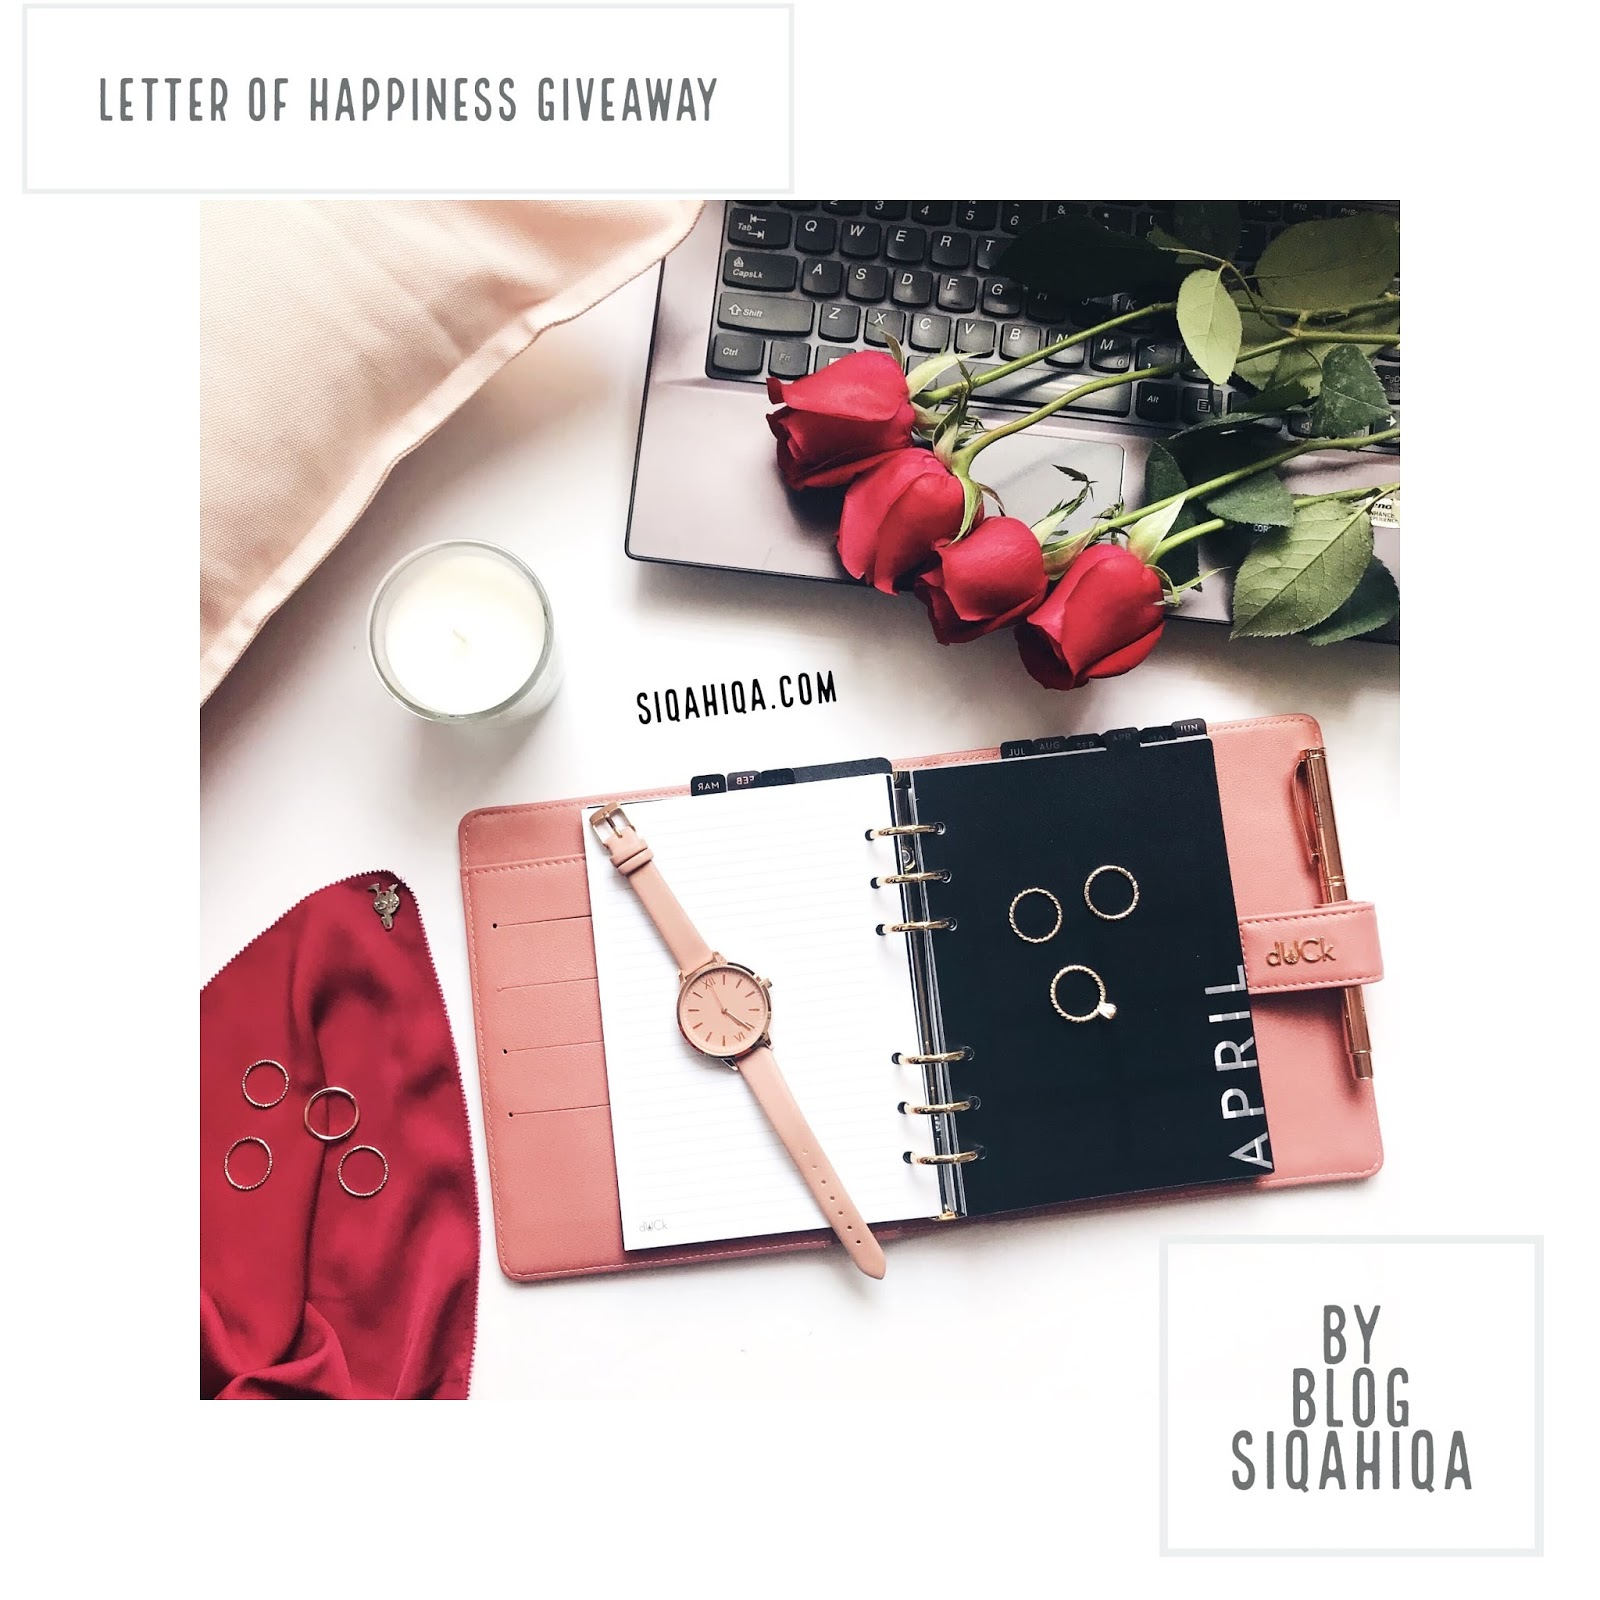 Letter of Happiness Giveaway by Blog Siqahiqa